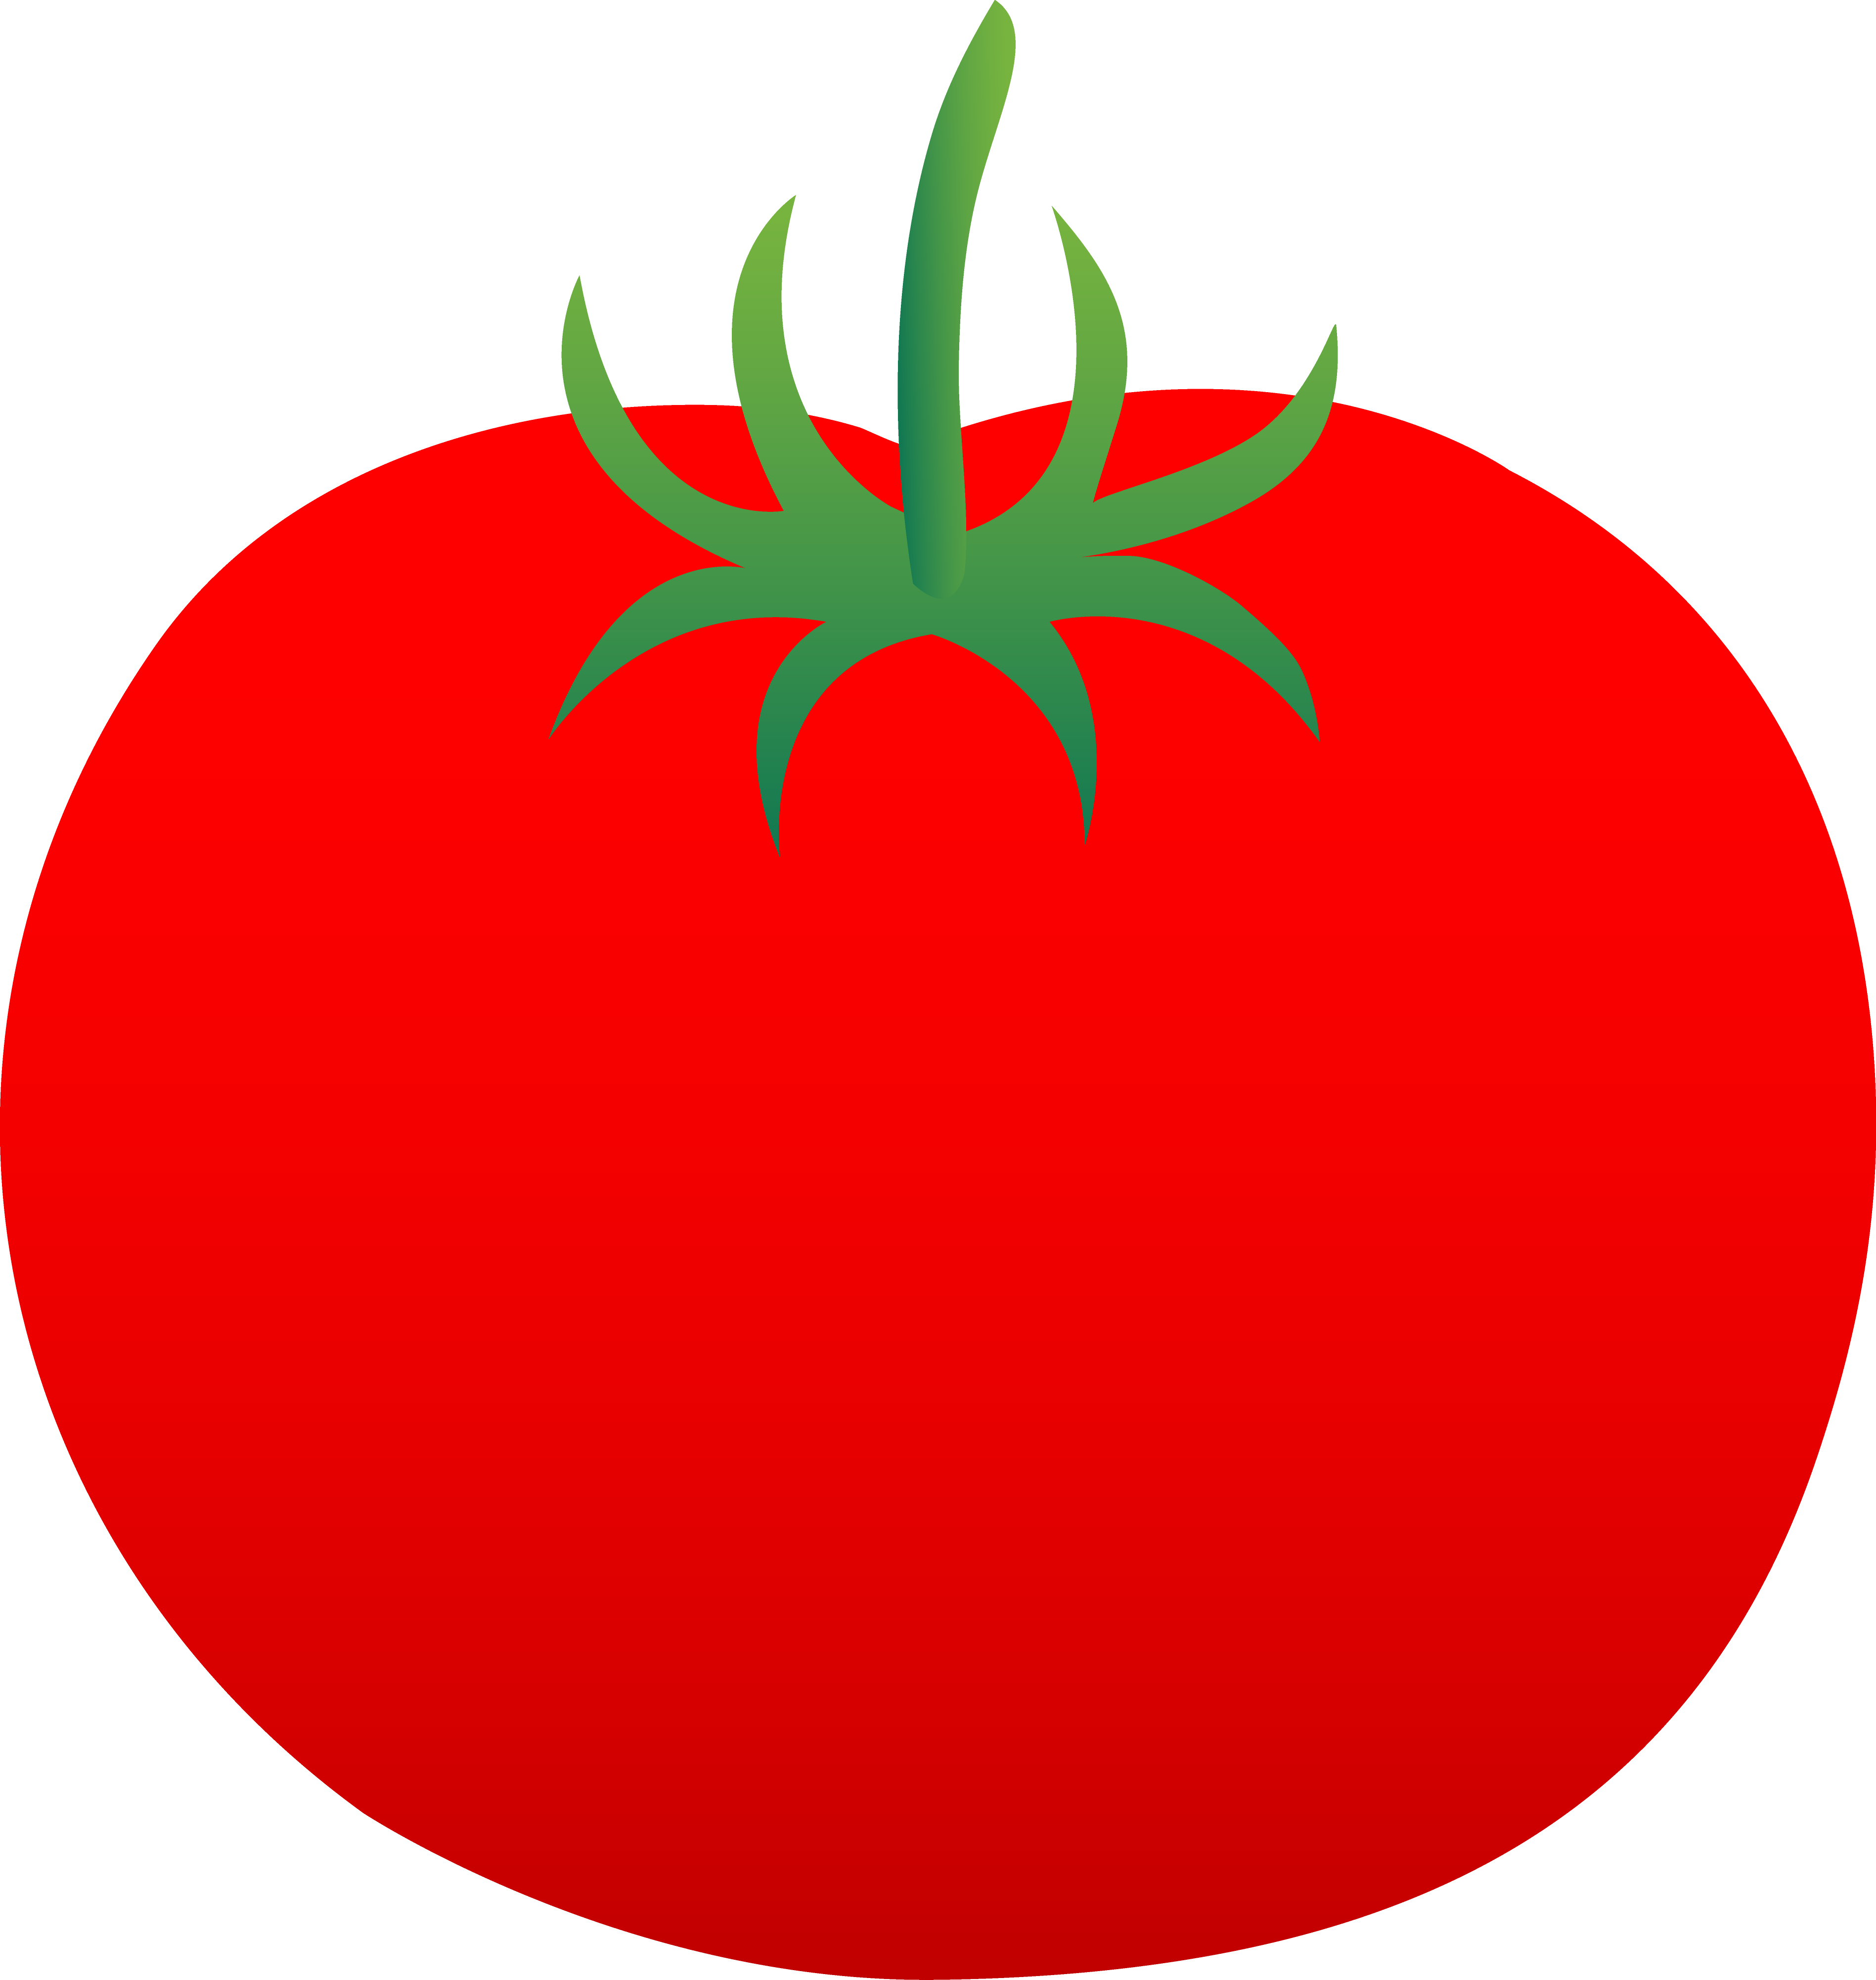 tomatoes clipart fun